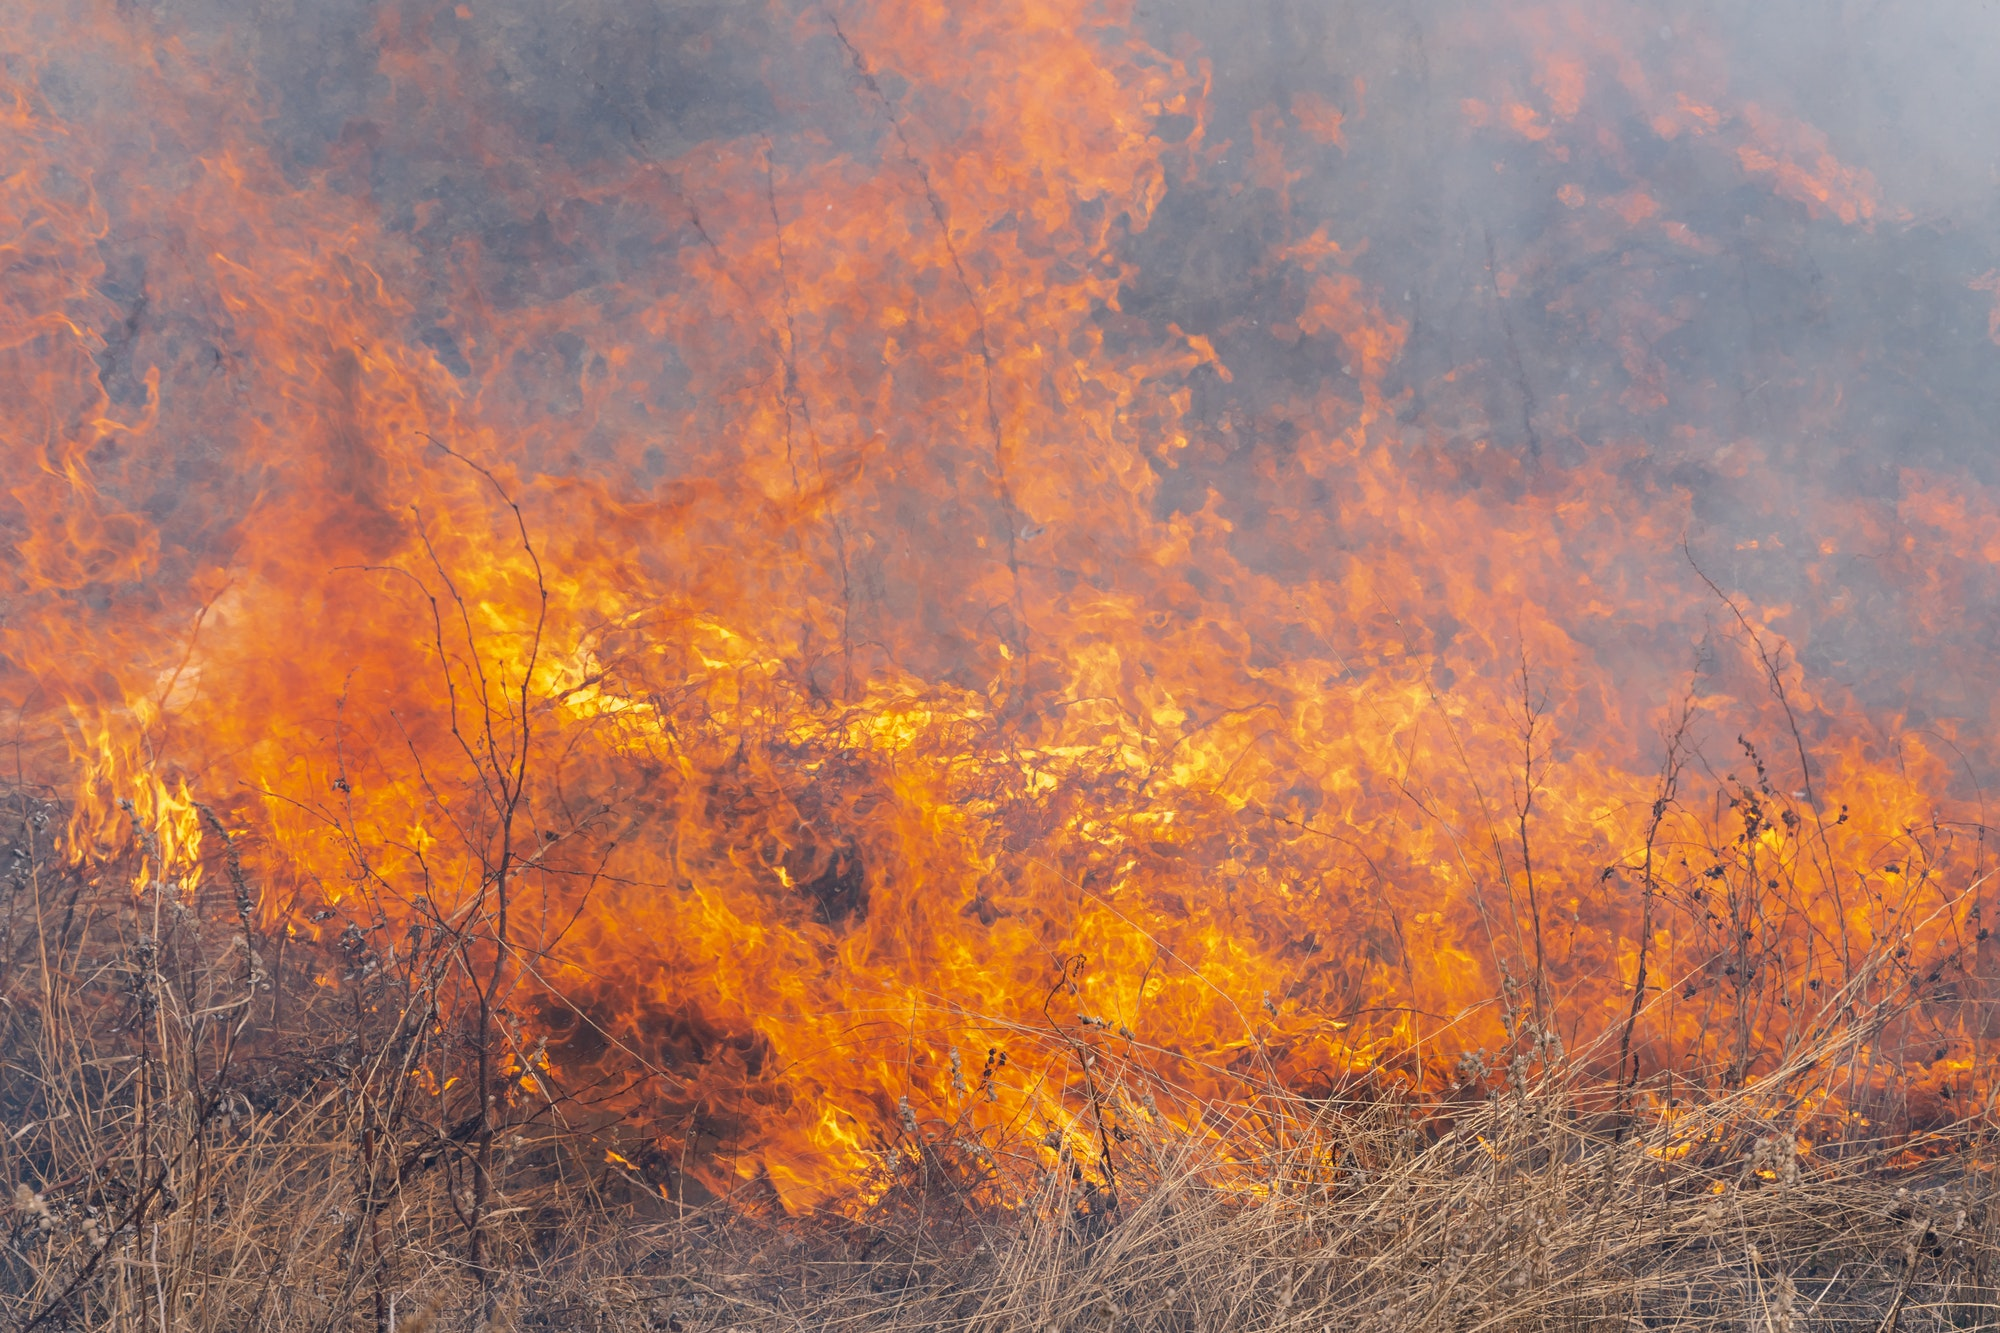 Red Flame of Fire with Different Figures on Background Burning Dry Grass in Spring Forest